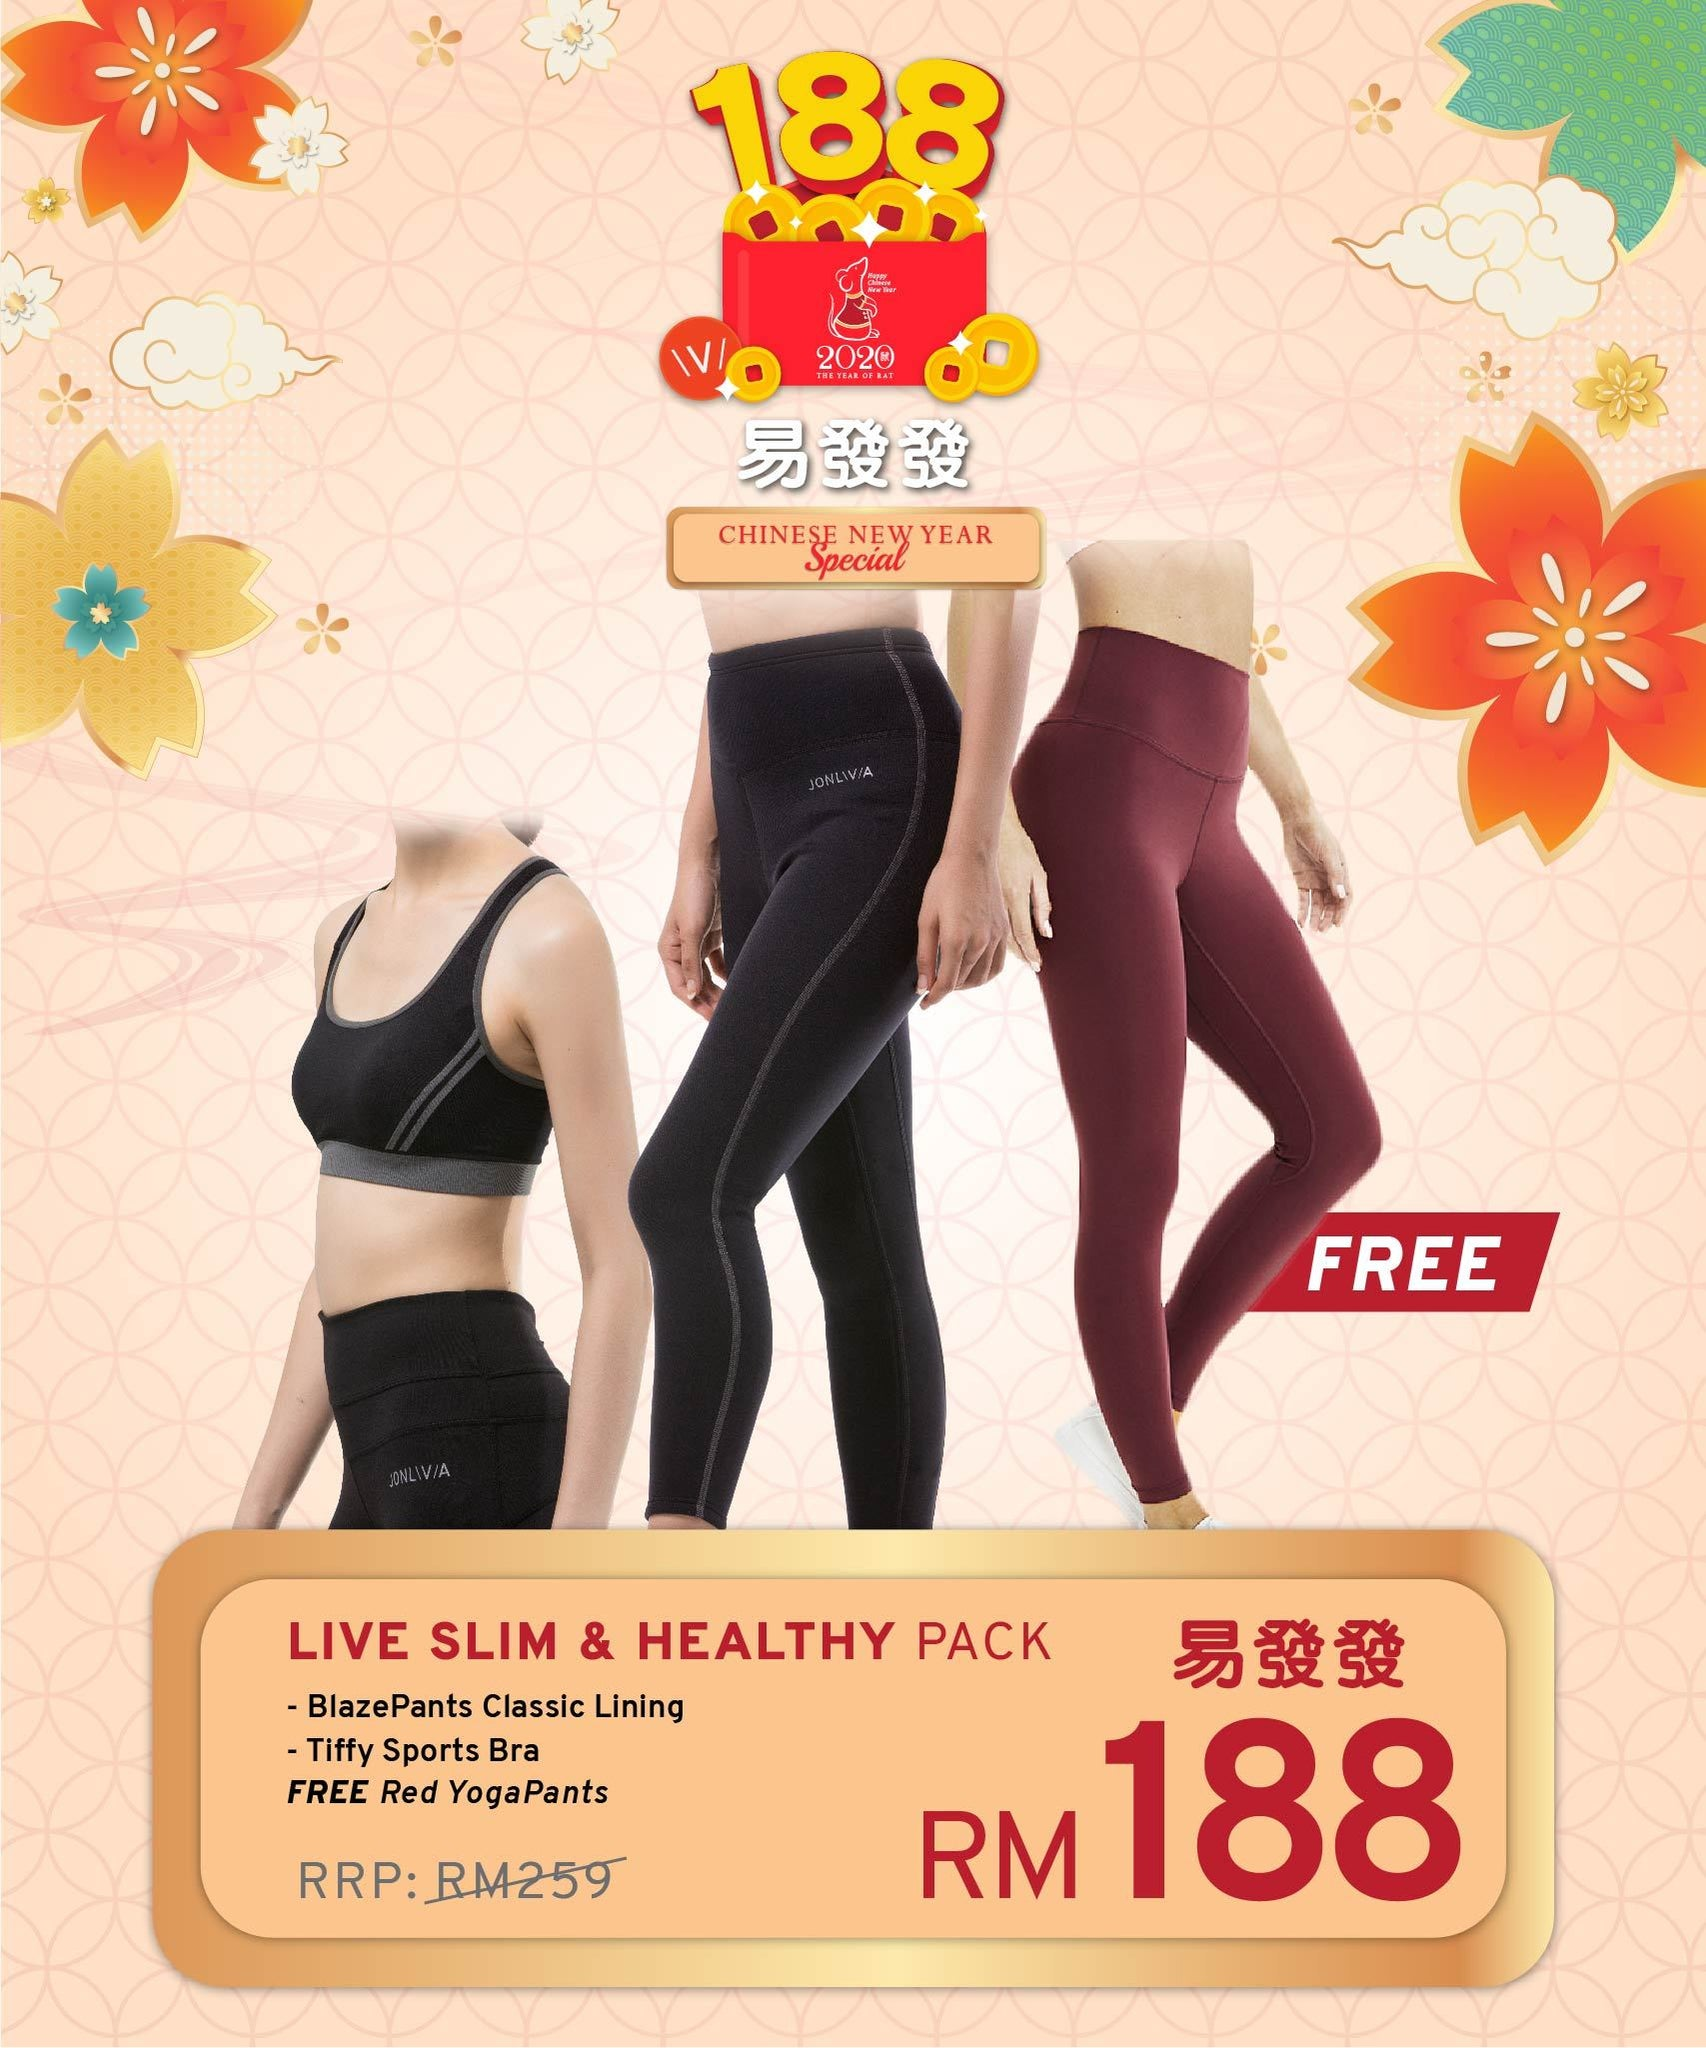 Live Slim & Healthy Pack (CNY2020 Theme Special - Red Yoga Pants)